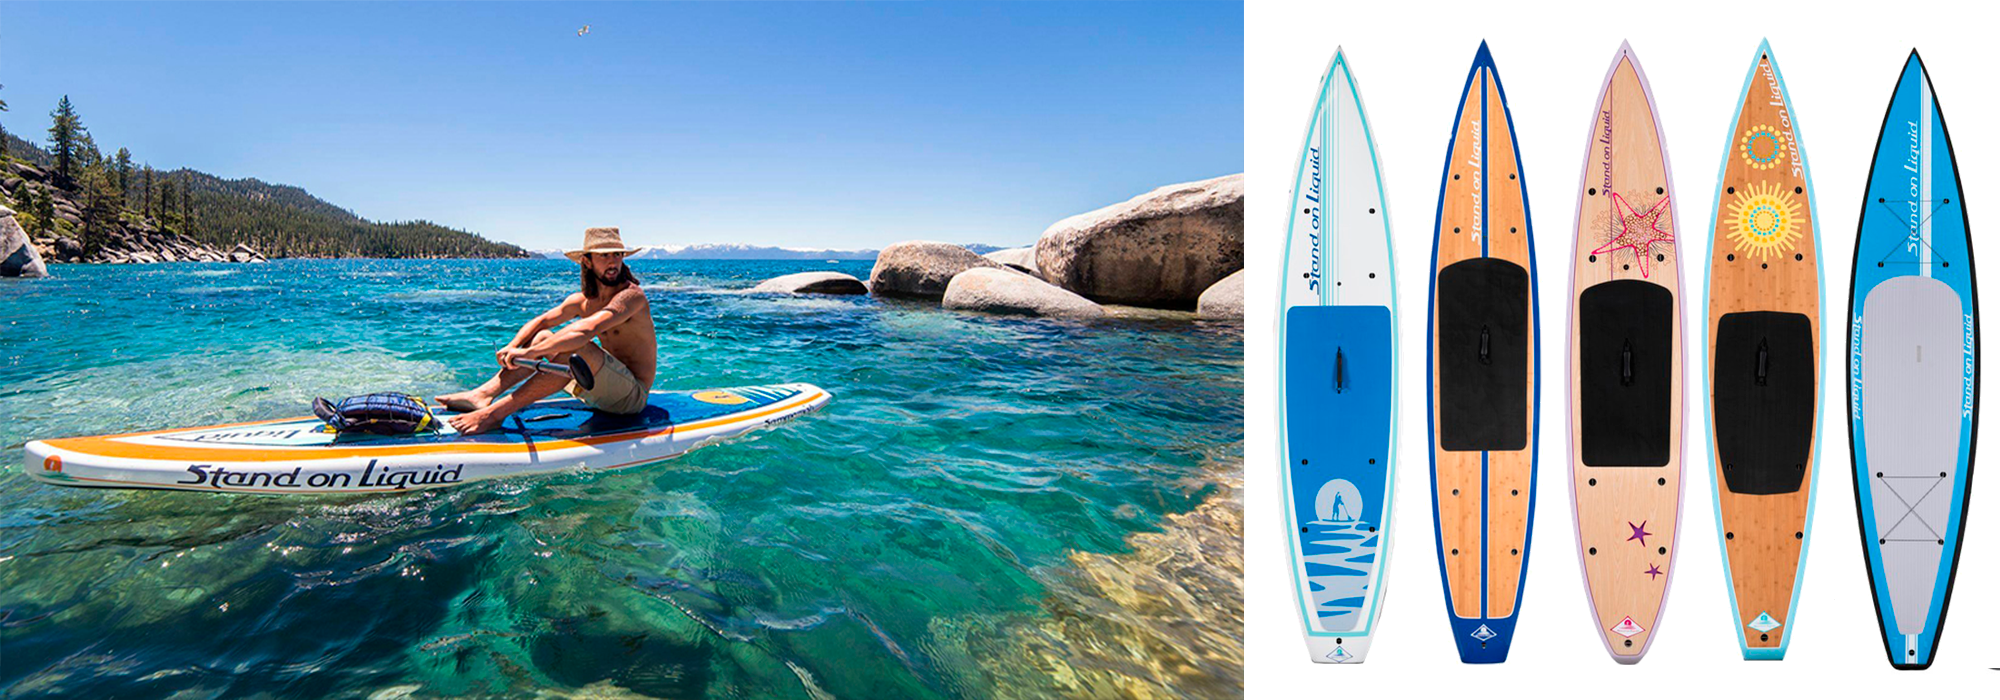 Stand on Liquid Paddleboard design